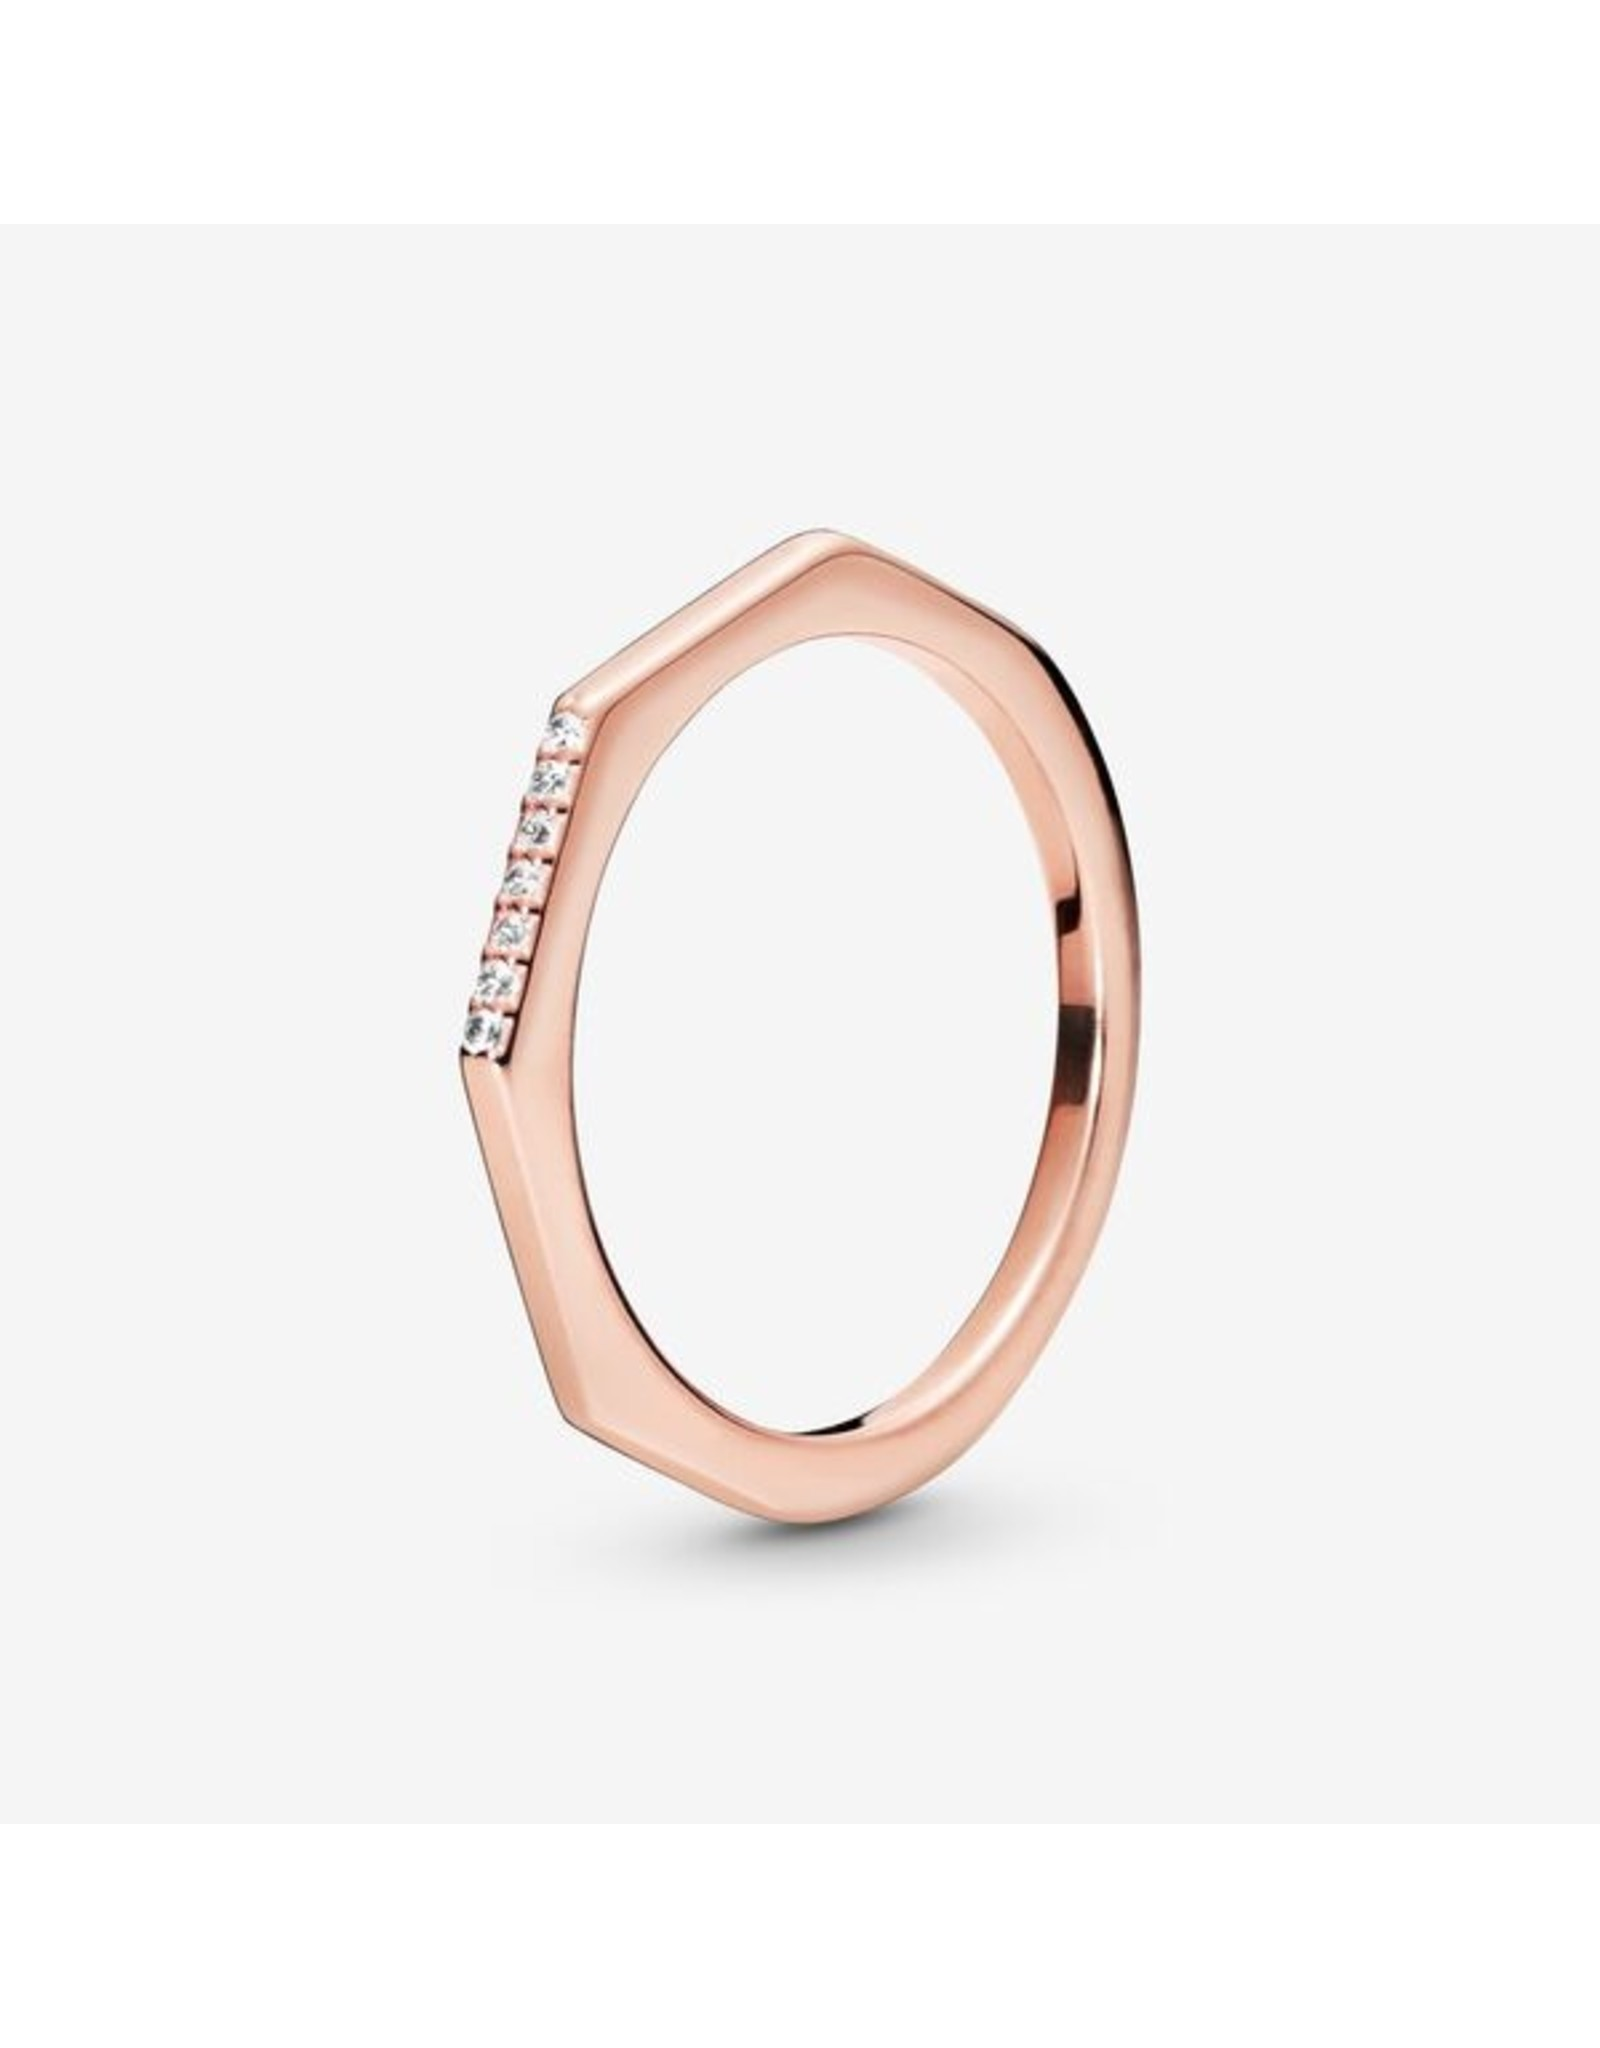 Pandora Pandora Ring,( 188343CZ) Rose Gold Multifaceted, Clear CZ